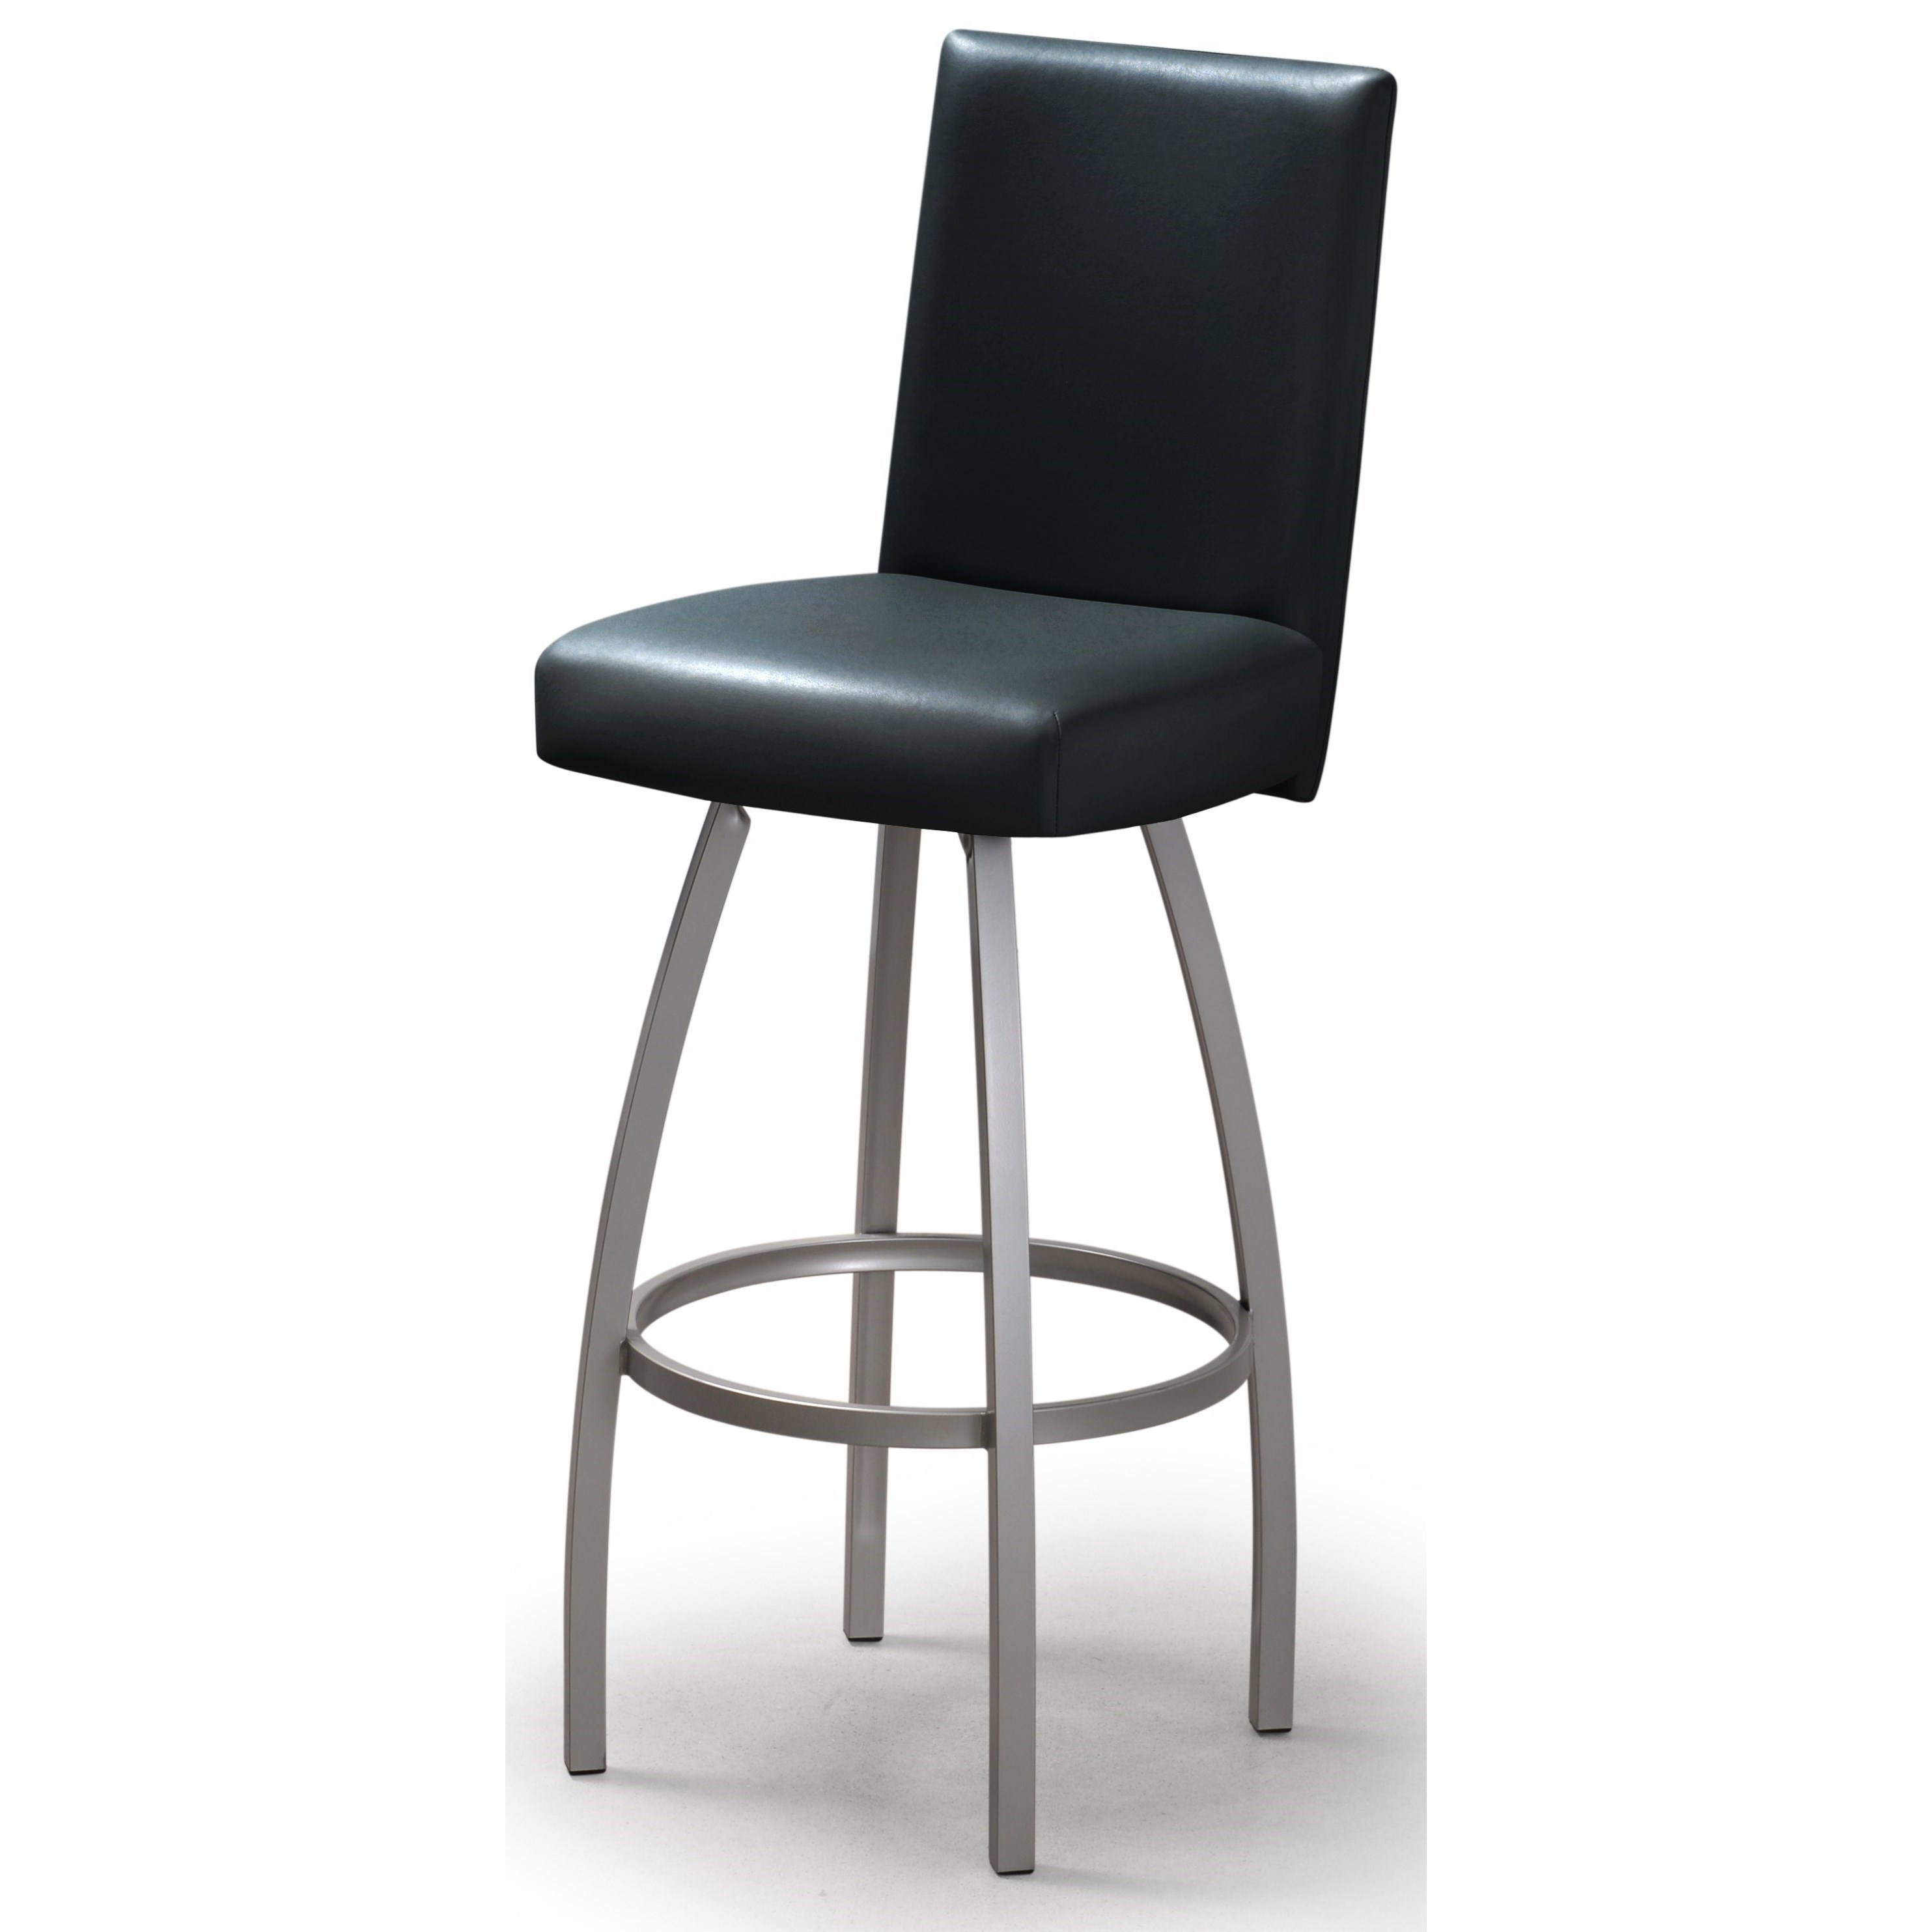 Contemporary Seating Nicholas Bar Stool at Bennett's Furniture and Mattresses